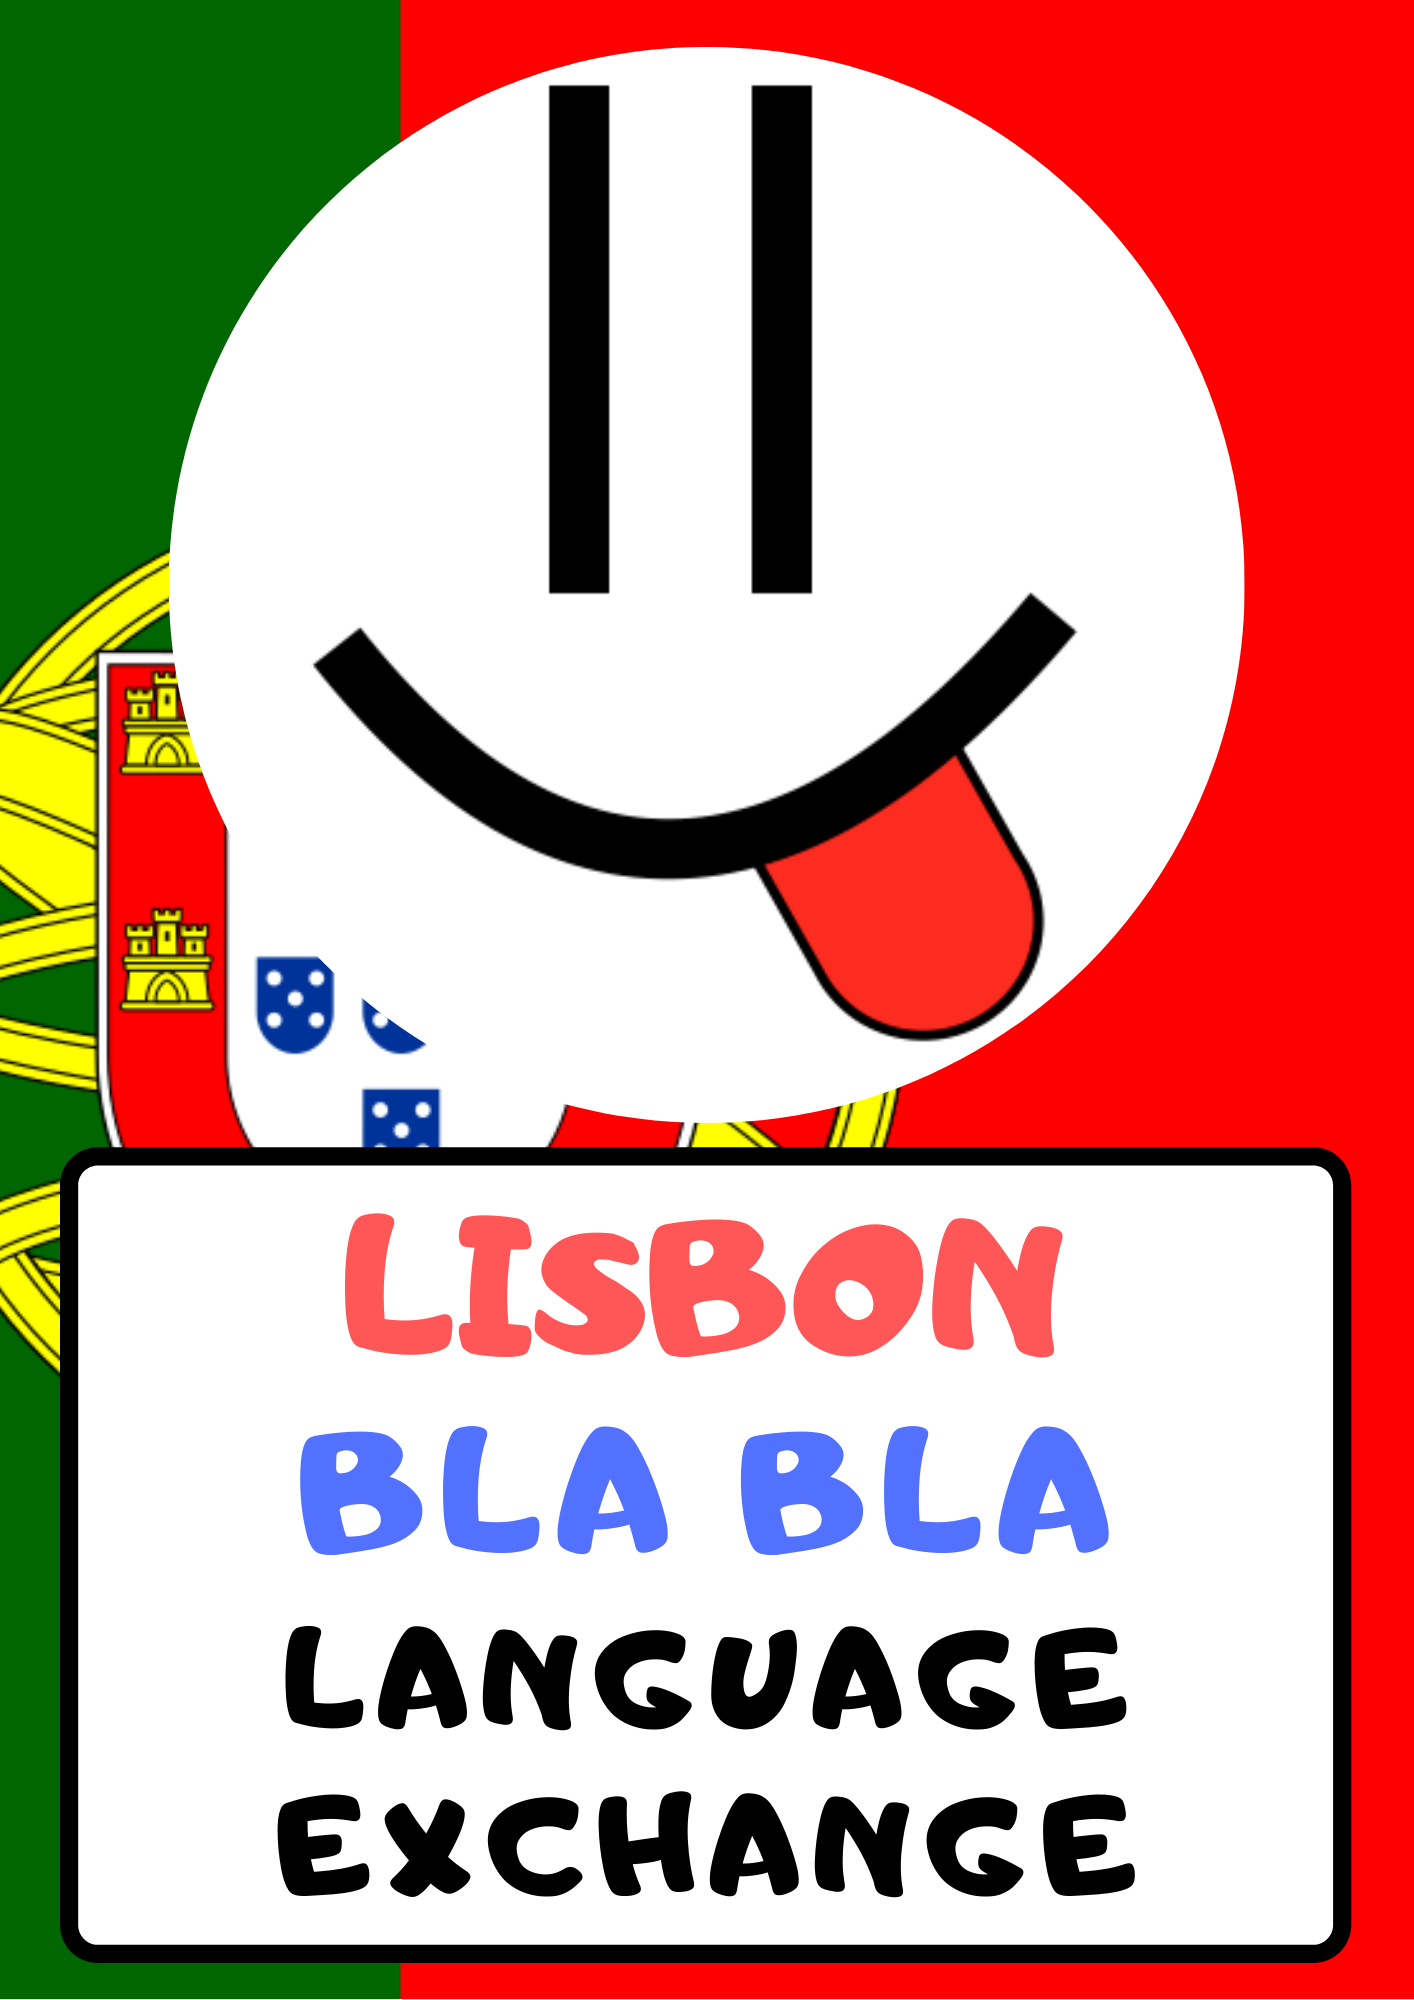 BRNO BLA BLA Language exchange (9)